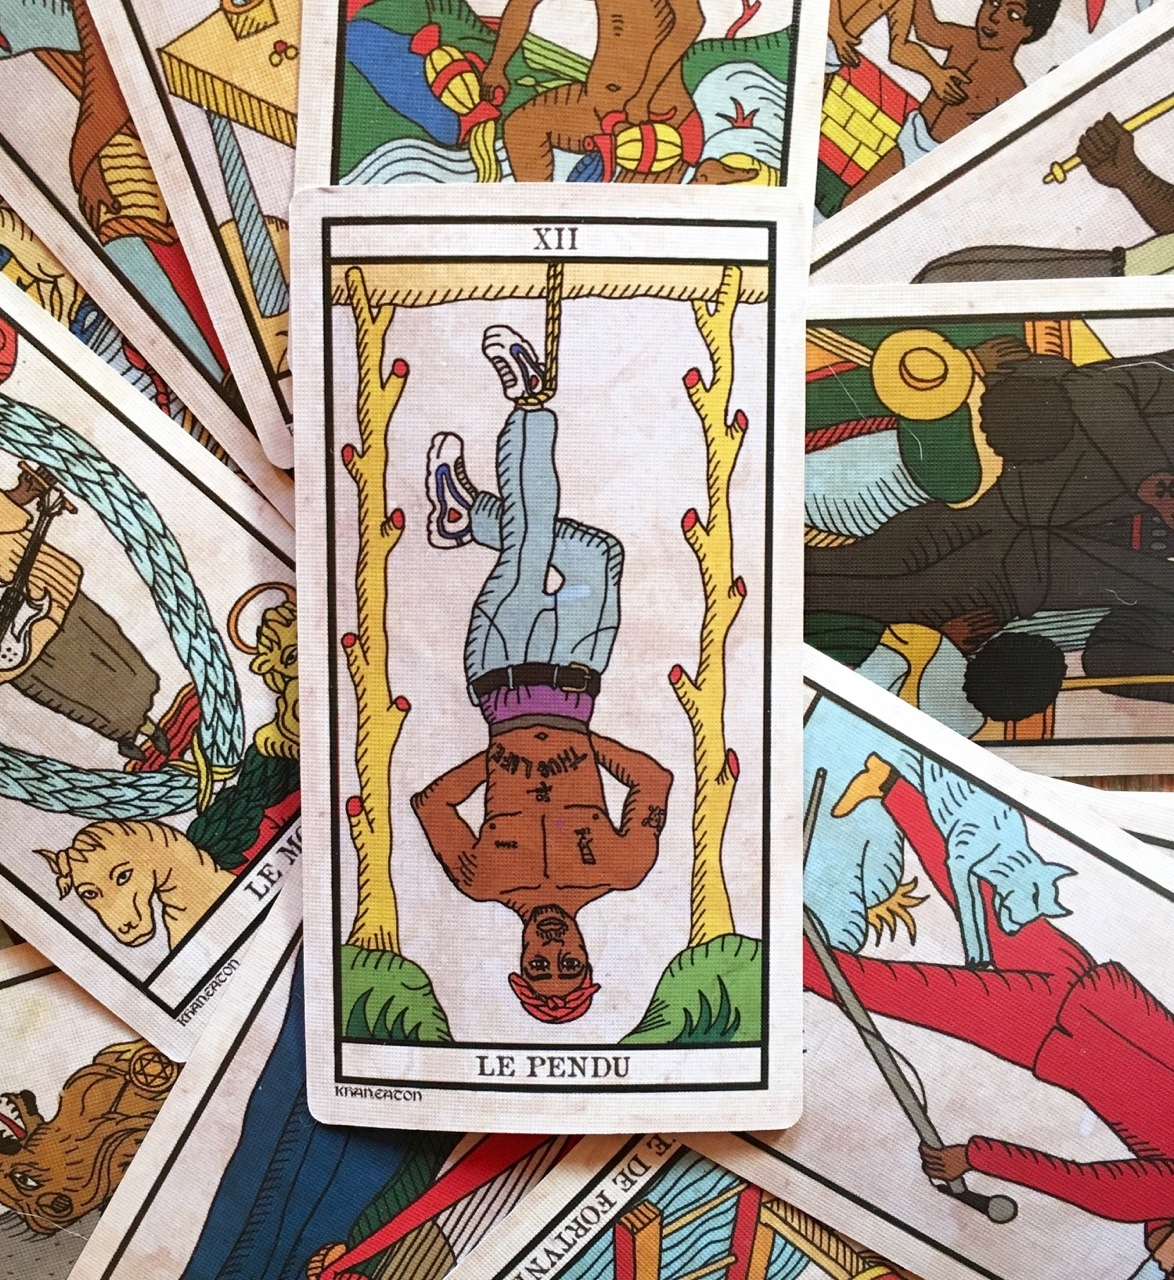 King Khan & Michael Eaton present The Black Power Tarot at Le Guess Who? 2017